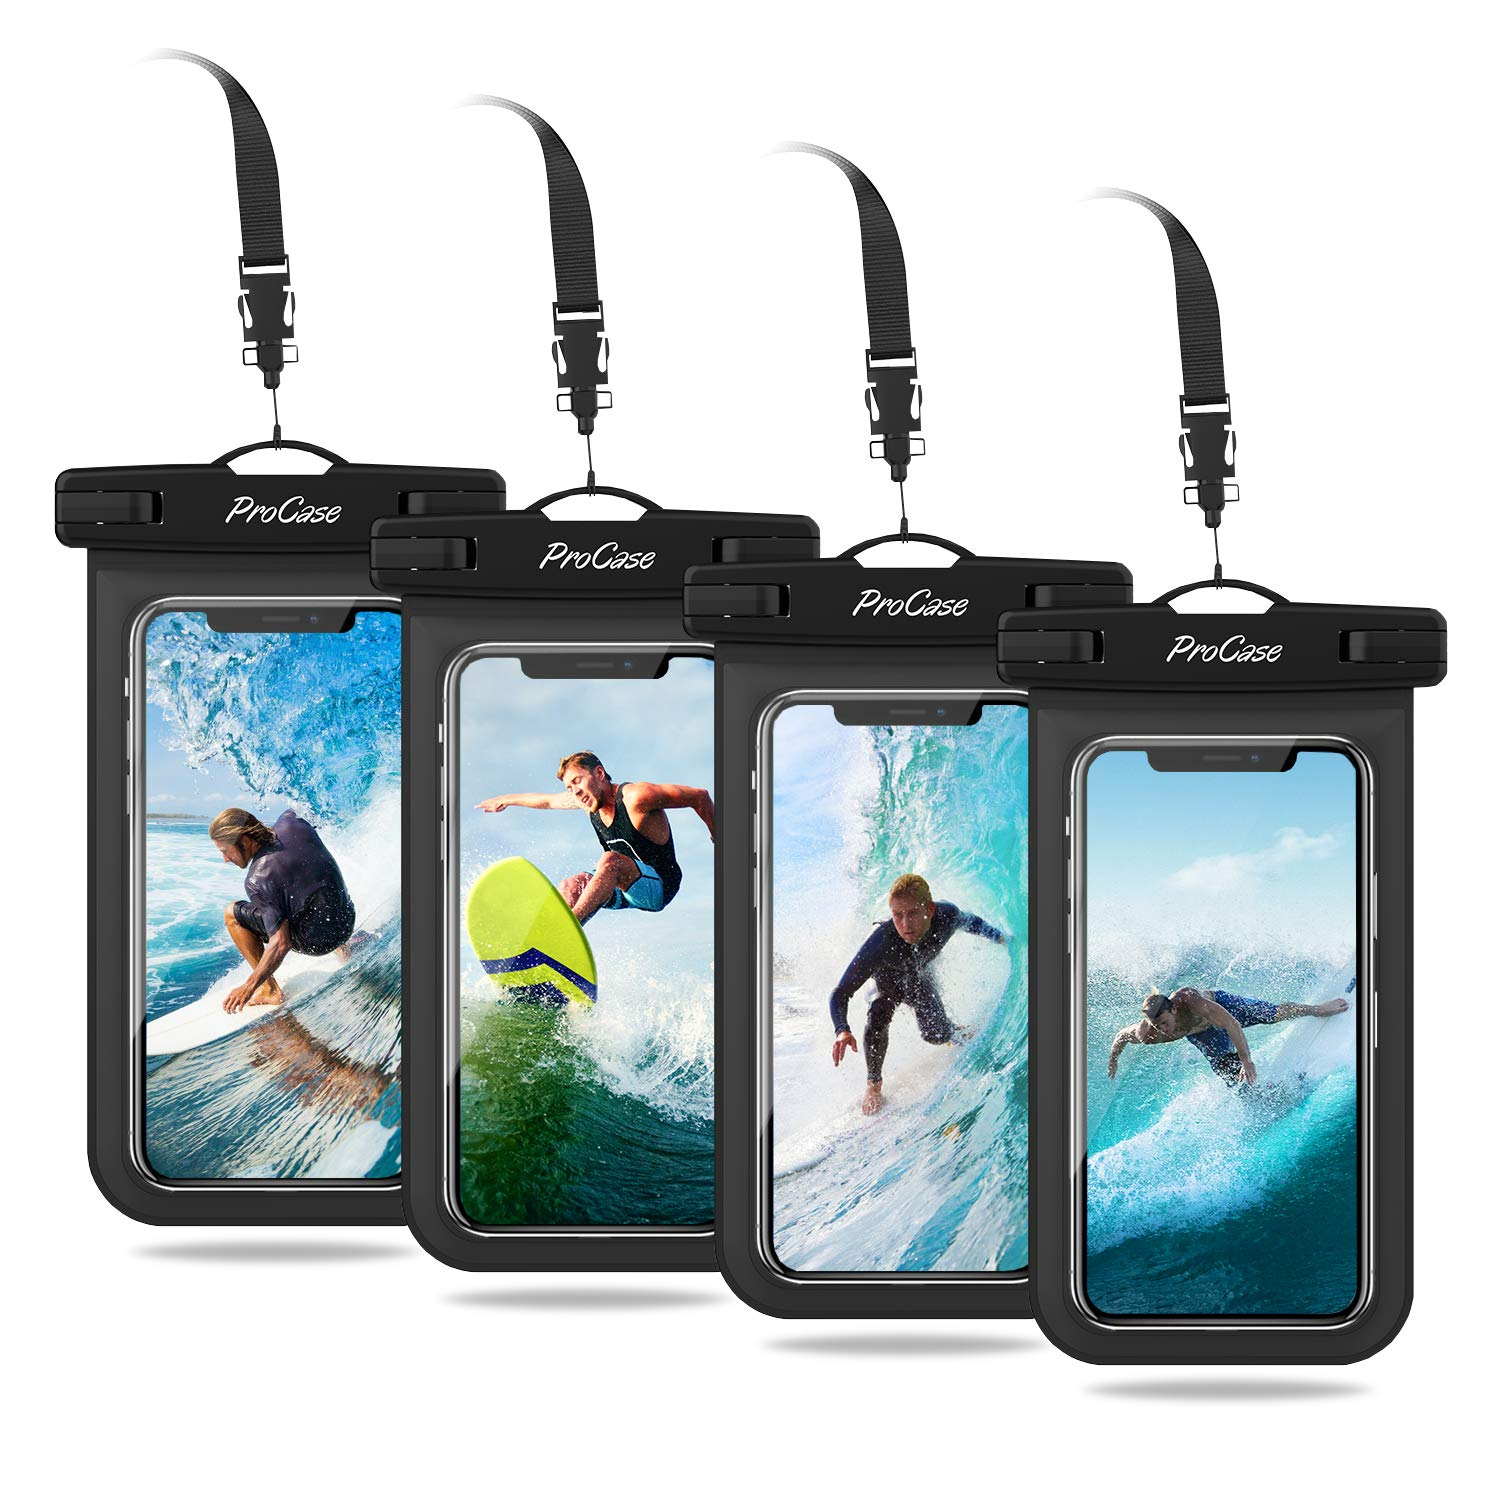 ProCase Universal Cellphone Waterproof Pouch Dry Bag Underwater Case for iPhone Xs Max XR X 8 7 6S Plus, Galaxy S10 Plus S10e S9 S8+ / Note 10 10+ 5G 9 8, Pixel 3 2 XL up to 6.8'' - 4 Pack, Black by ProCase